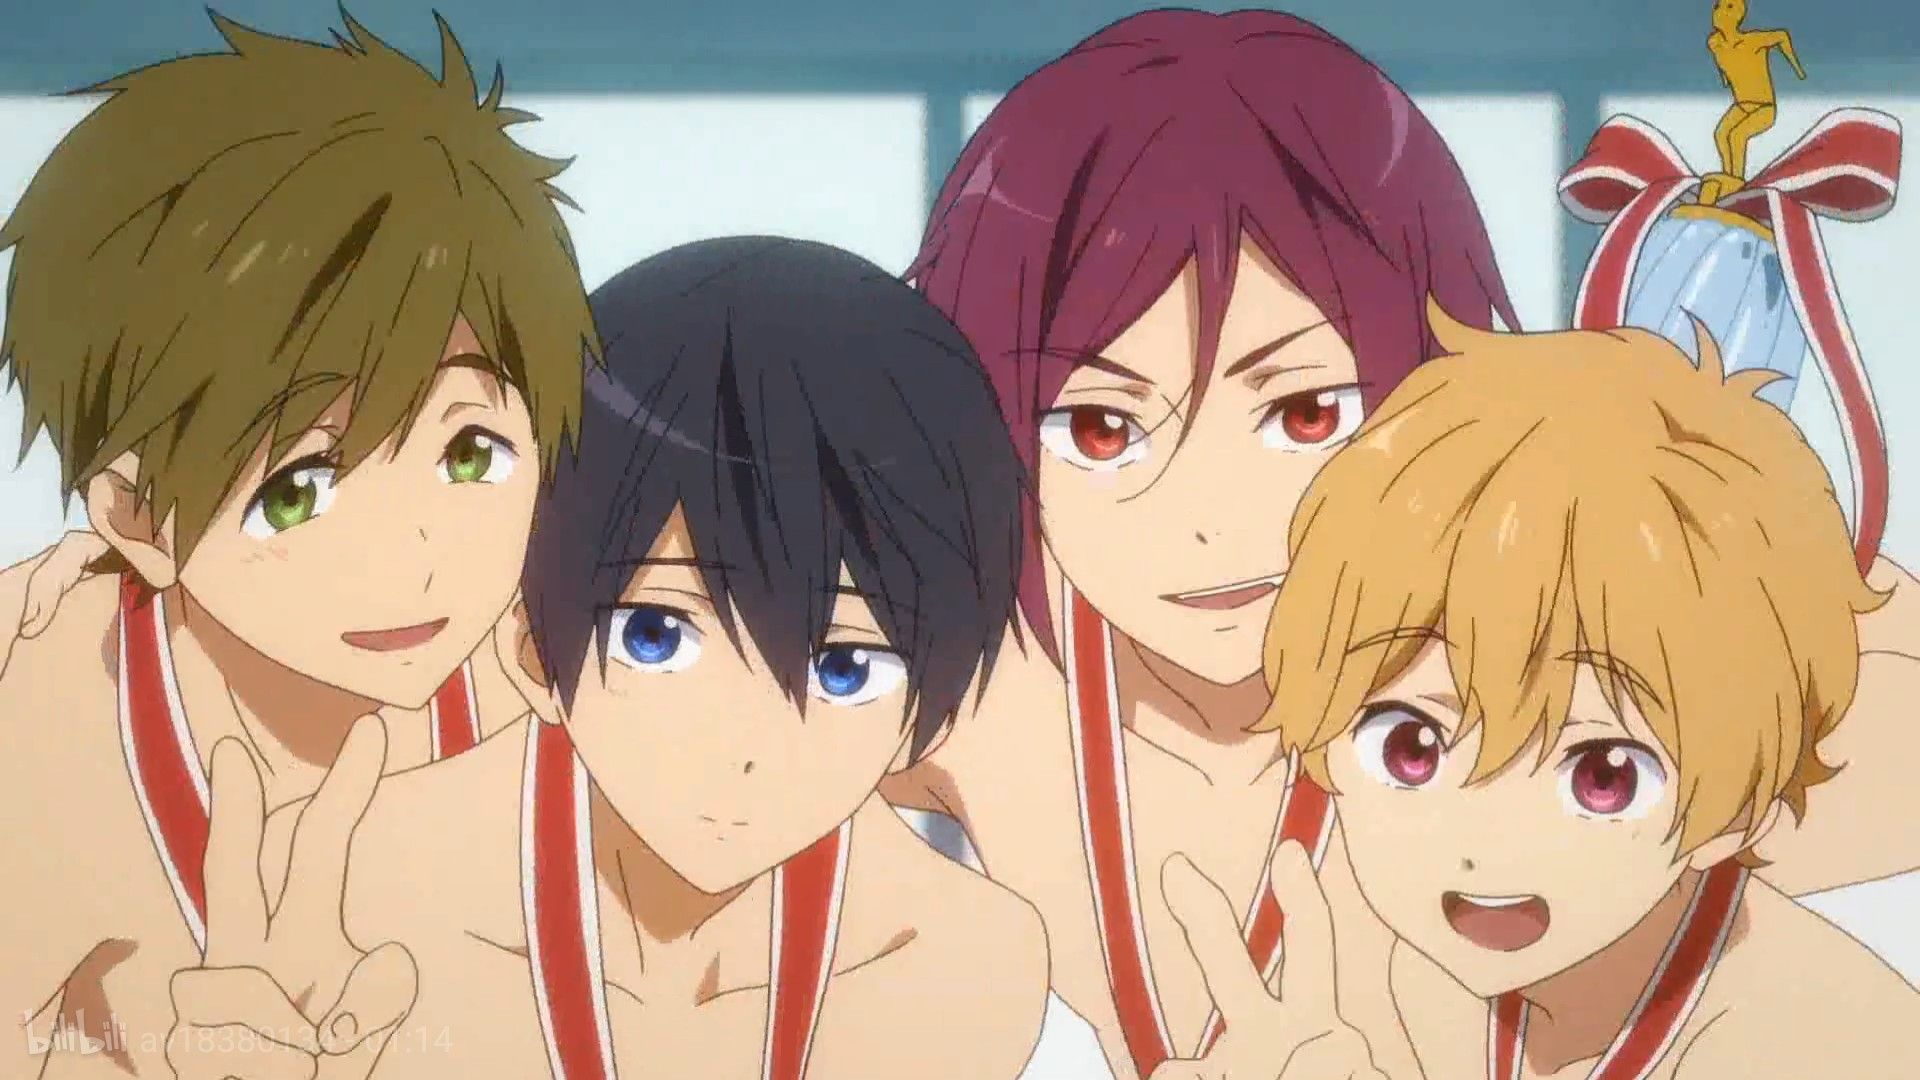 Pin by RIN刃 on FREE!男子游泳部 in 2020 Free anime, Anime